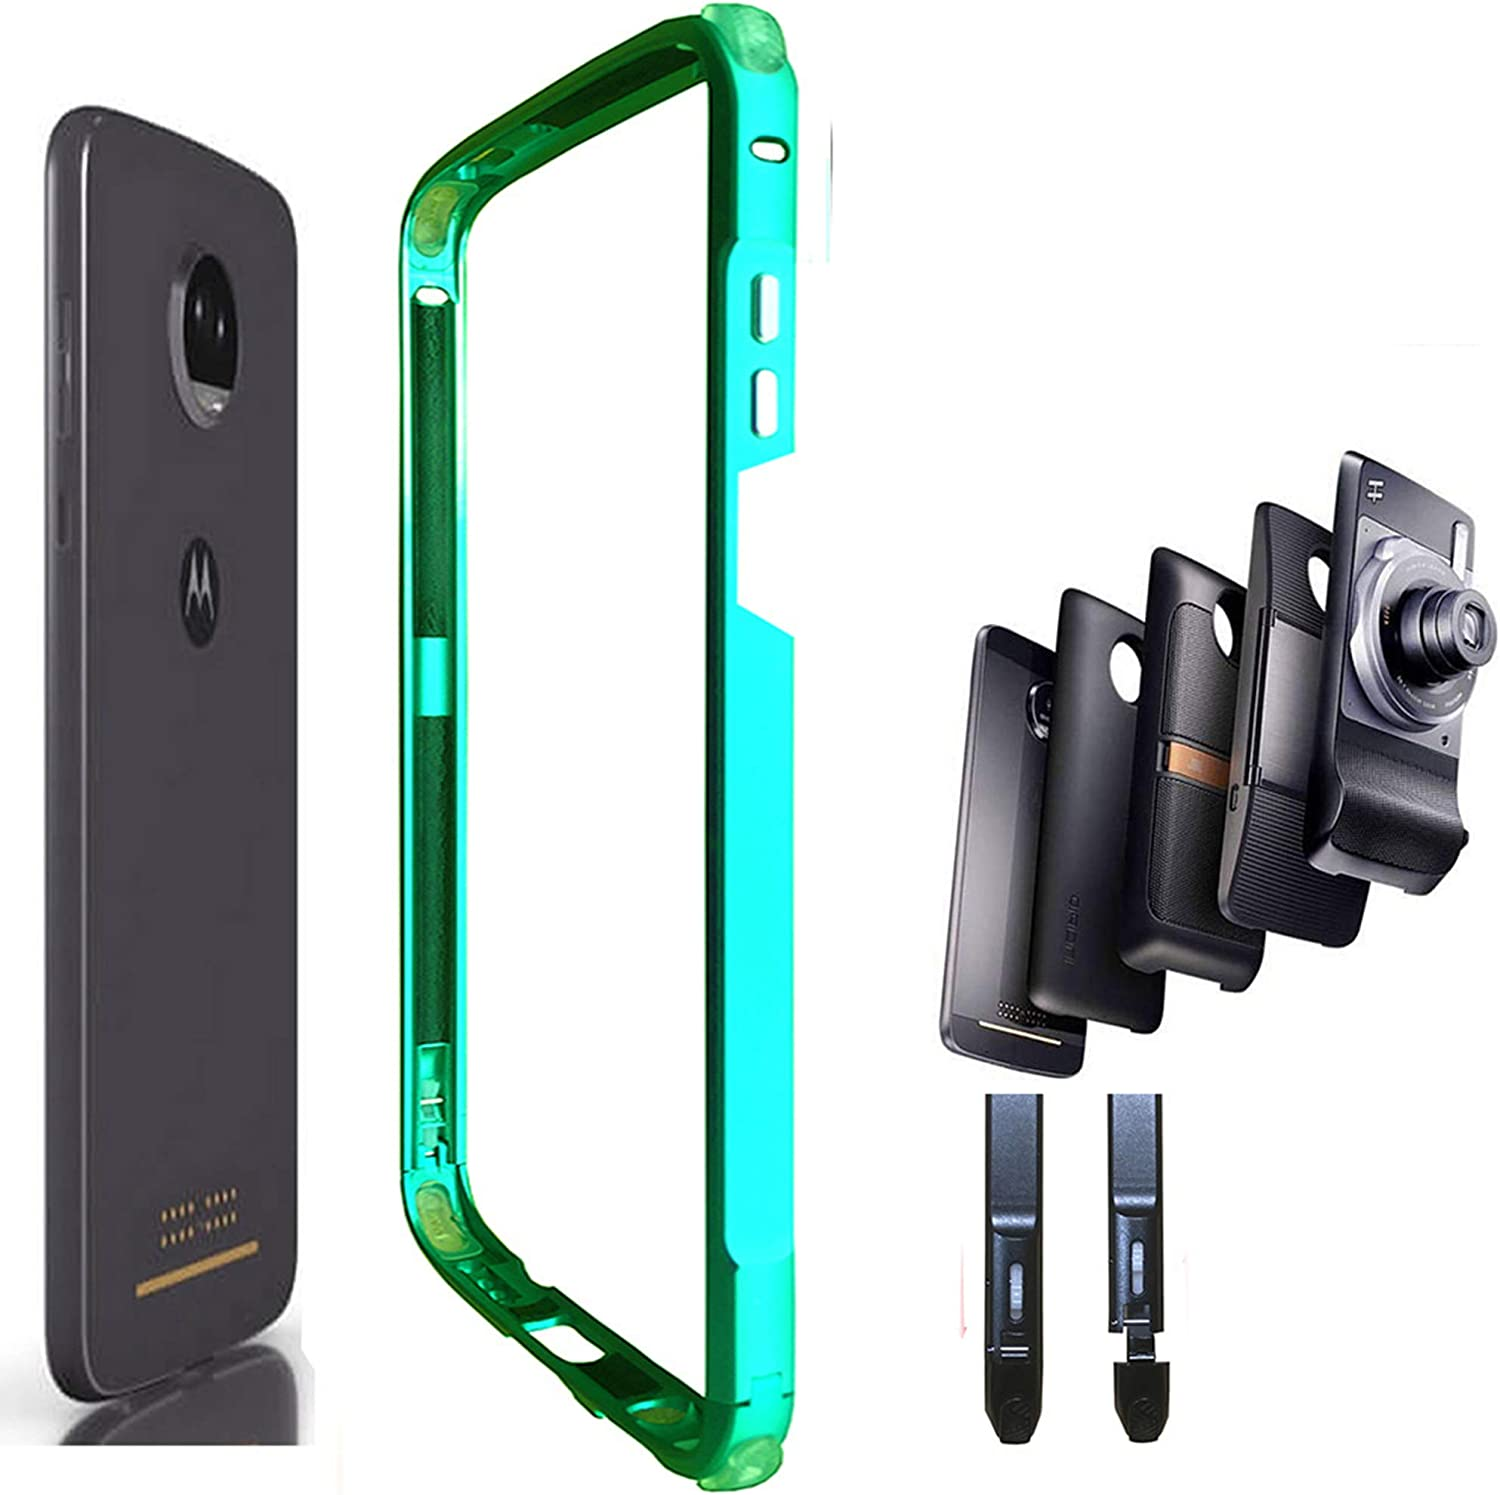 Moto Z3/Z3 Play Case,Aluminum Alloy Bumper Frame Compatible with Moto Mods Moto Hasselblad True Zoom Mod Power Pack Mod Moto Style Shell Moto Wireless Charger Mod(Emerald-Green)